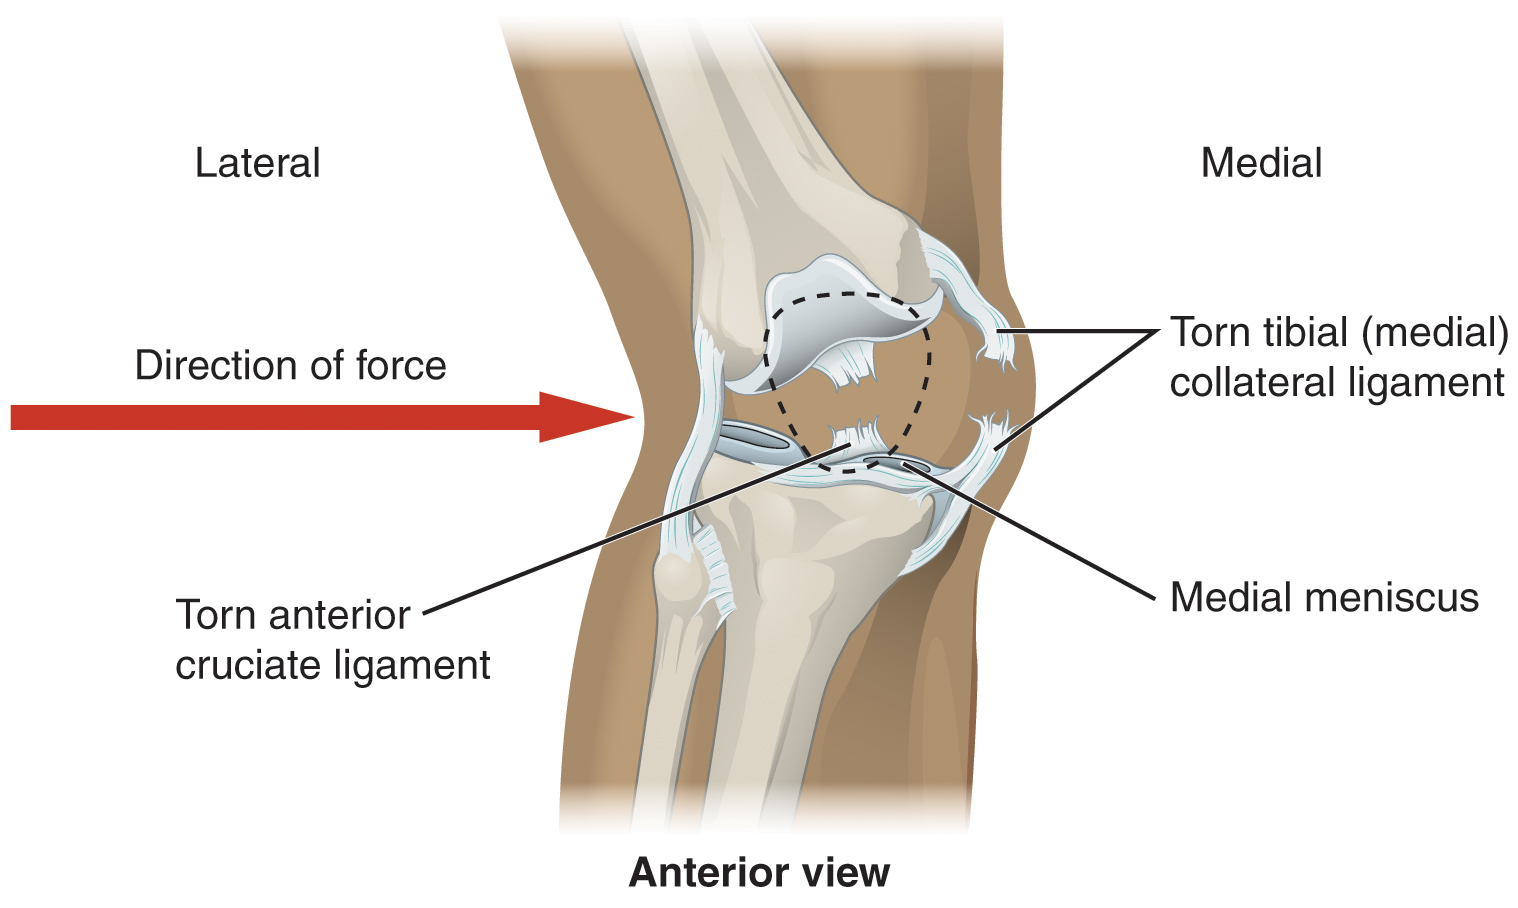 Nationwide implementation of anterior cruciate ligament